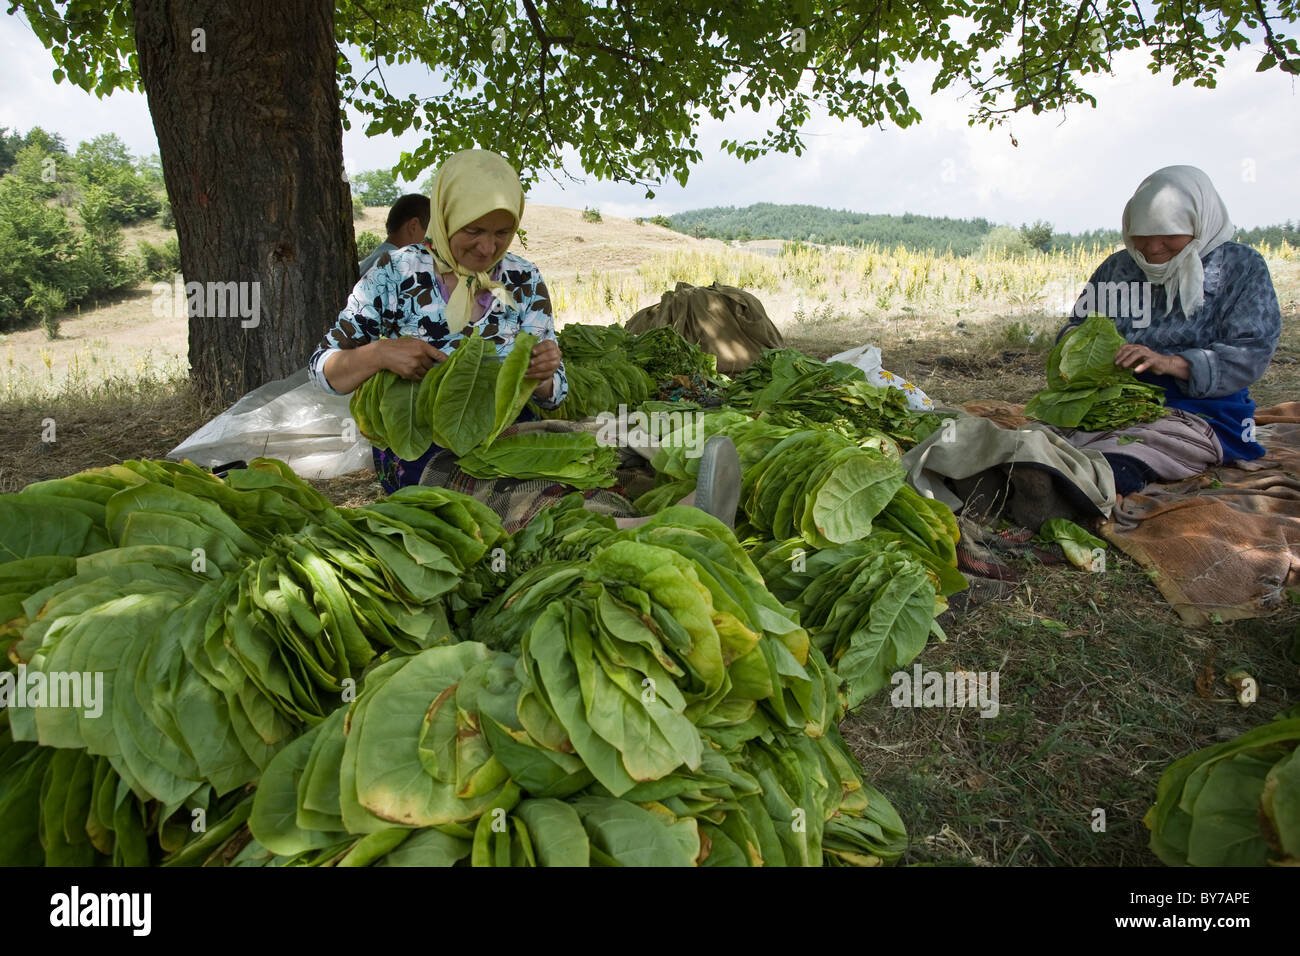 Tobacco leaves are strung up to dry, Dagonovo village, Balkans, Bulgaria - Stock Image